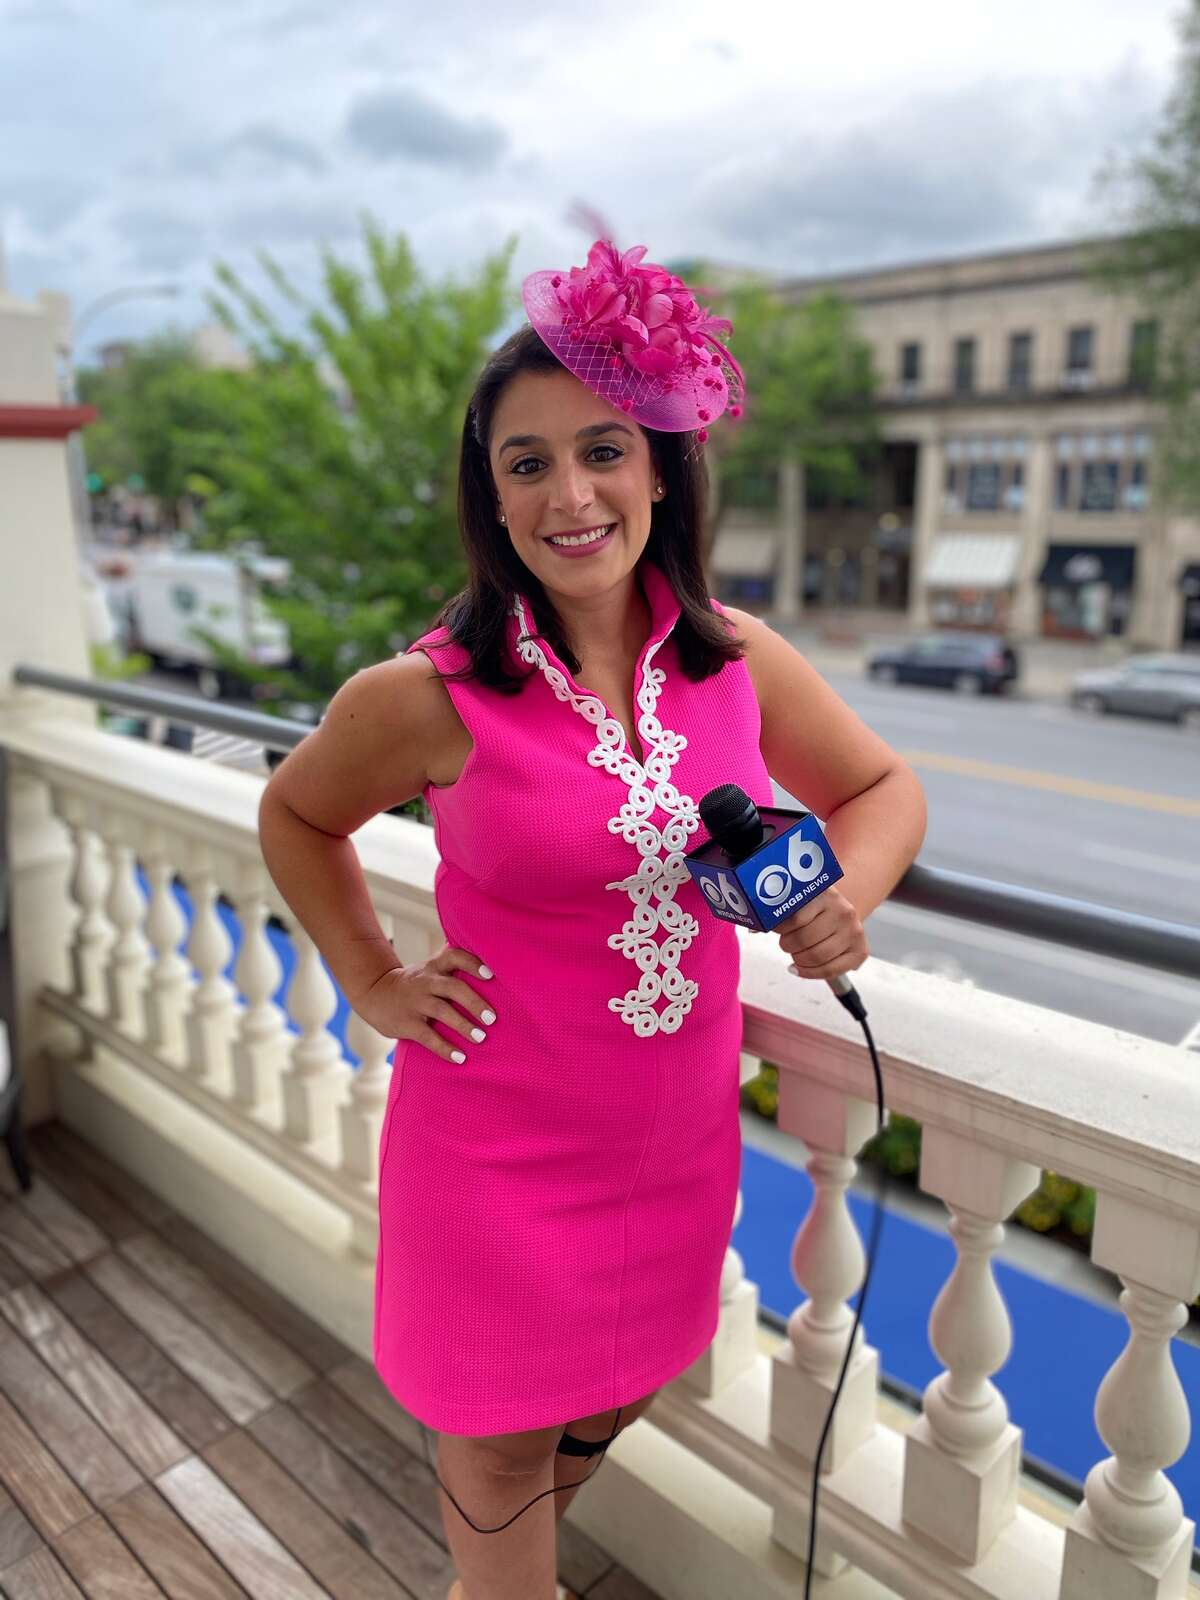 Leanne DeRosa has been working at CBS6 Albany for more than three years. She started out reporting on the morning shift. When the state shut down in March, she moved to the day shift.